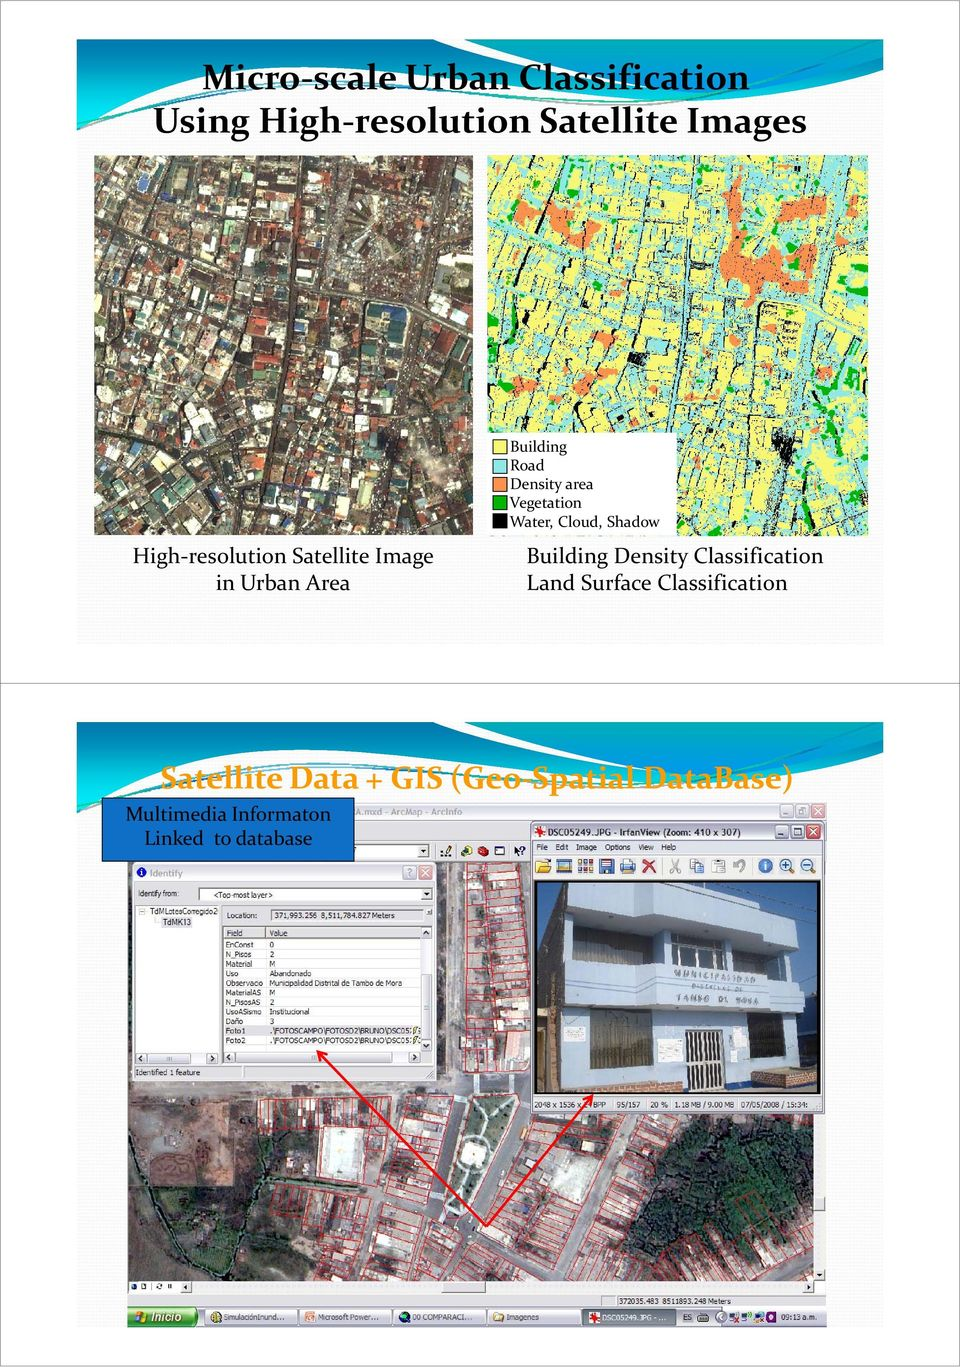 Area Building Density Classification Land Surface Classification Satellite Data + GIS